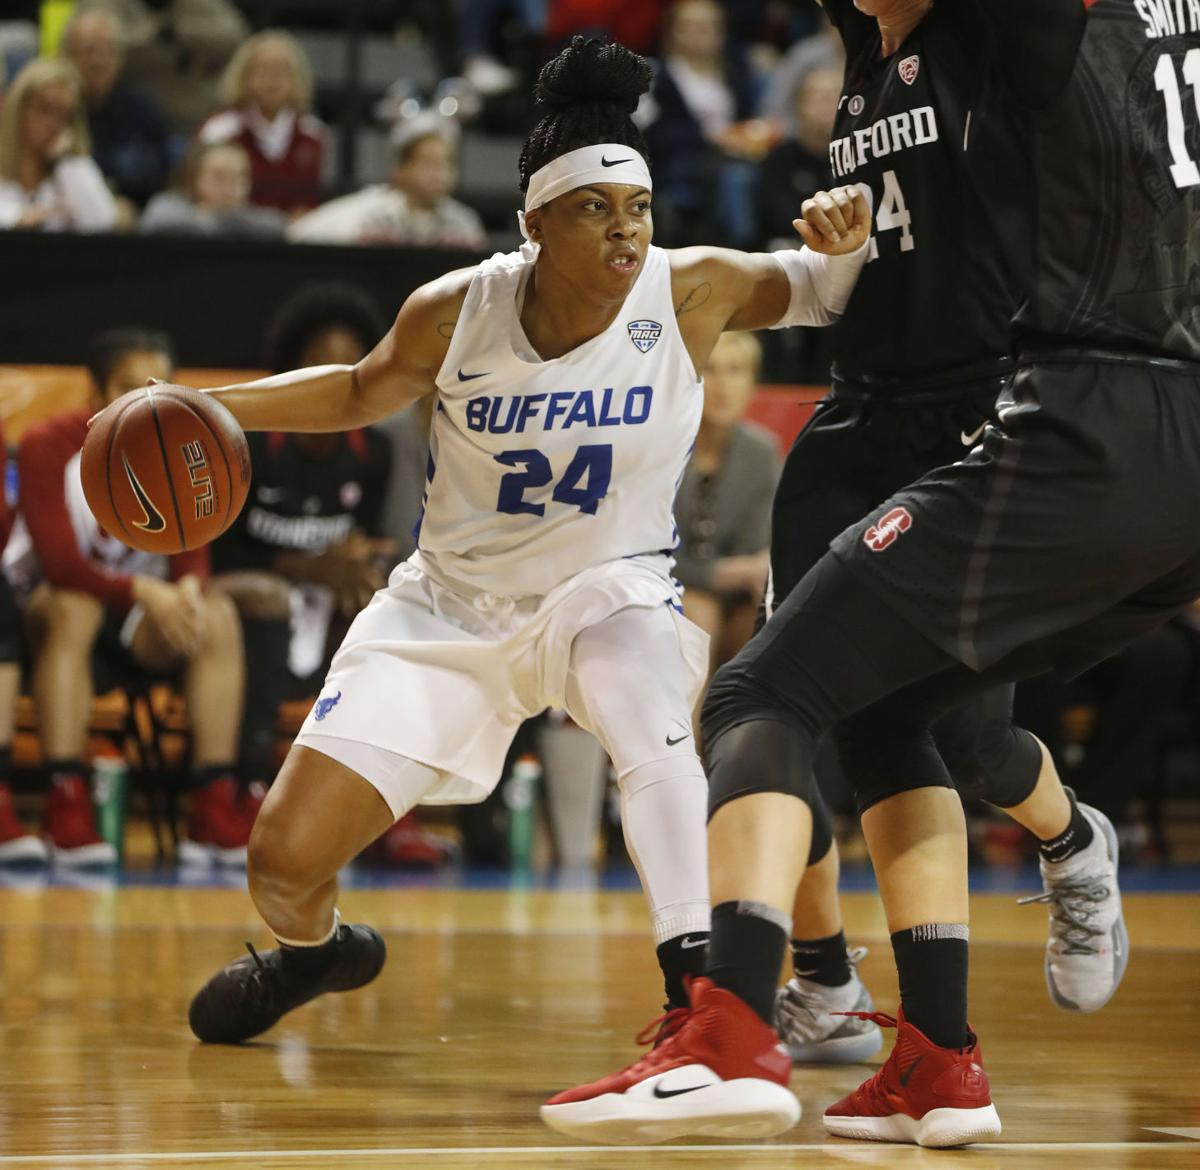 SPORTS STANFORD AT UB WOMENS HOOPS